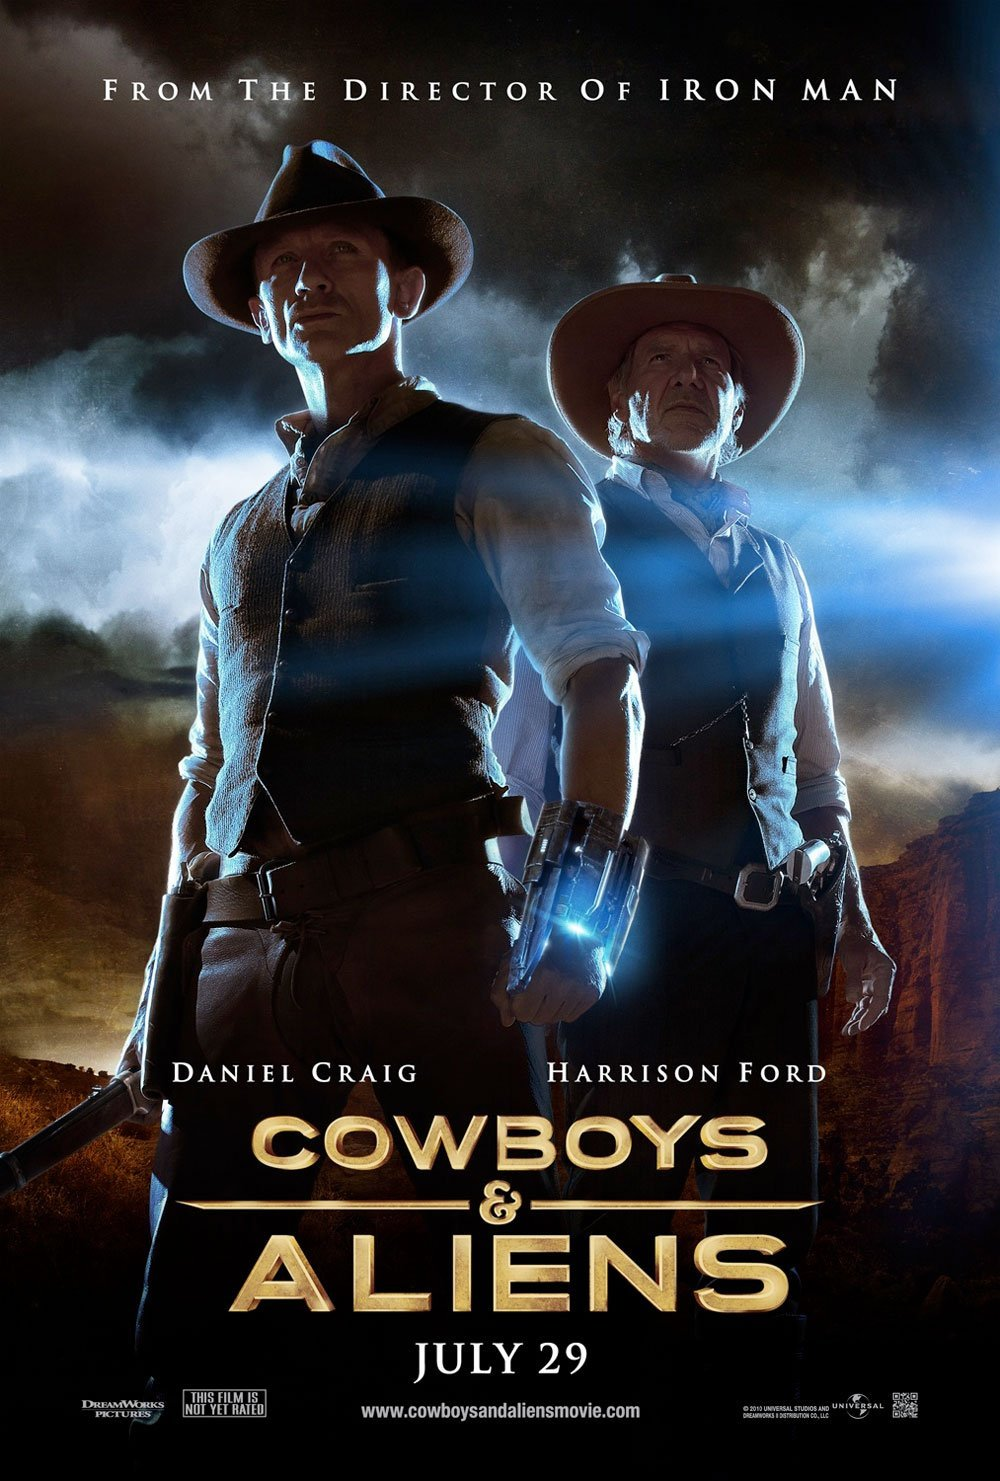 Cowboys & Aliens poster & featurette